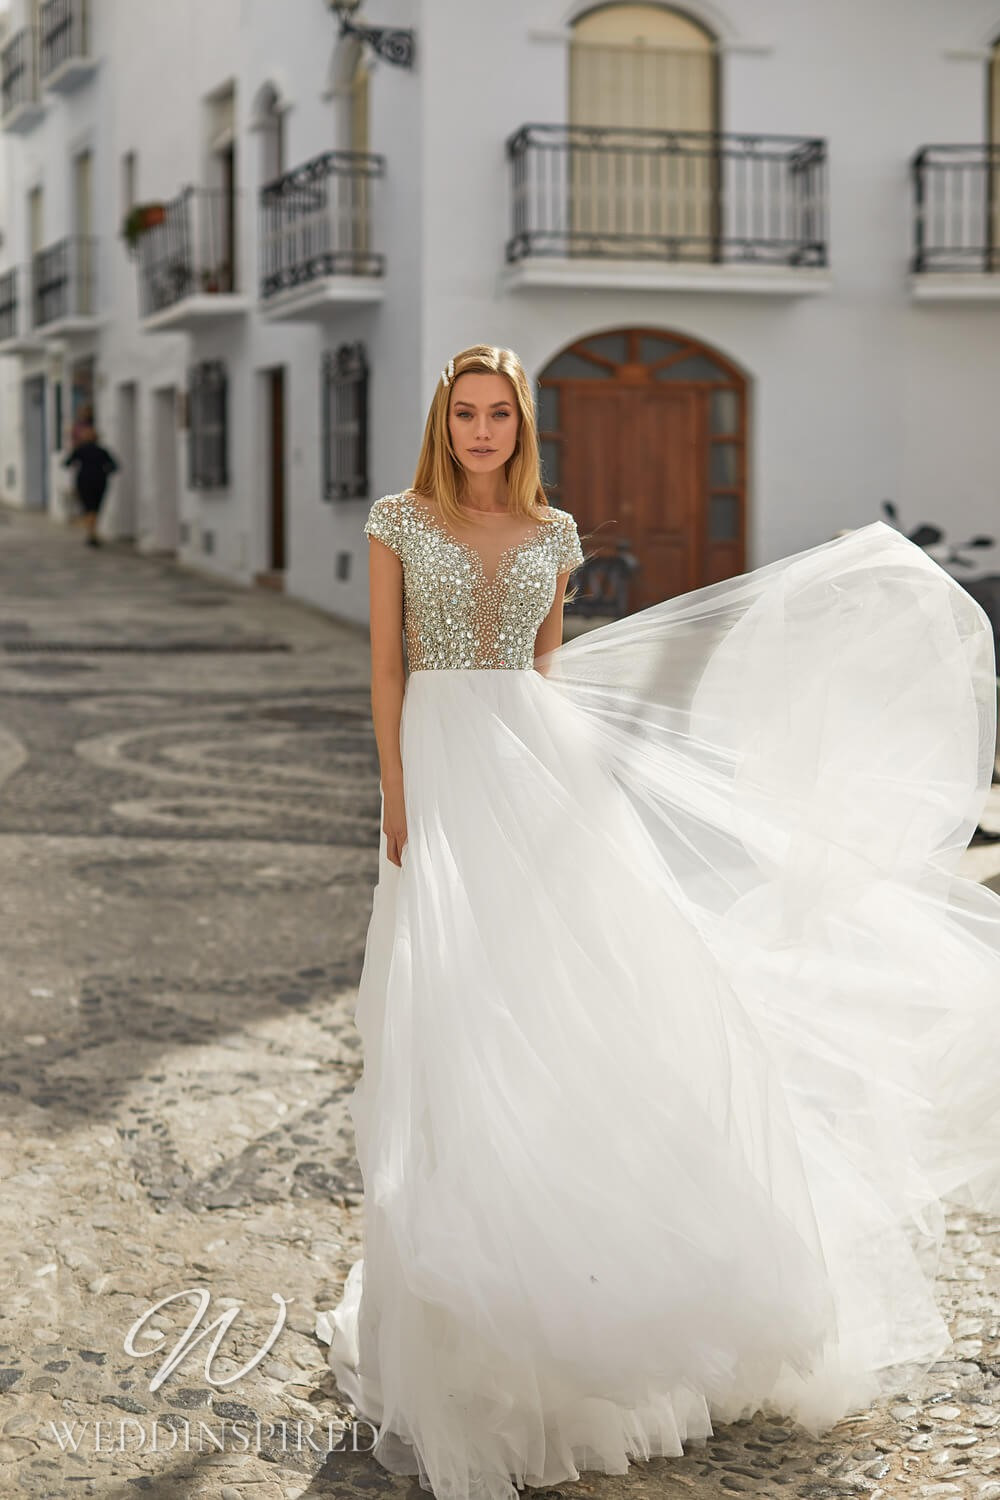 An Essential by Lussano 2021 sparkly tulle A-line wedding dress with cap sleeves